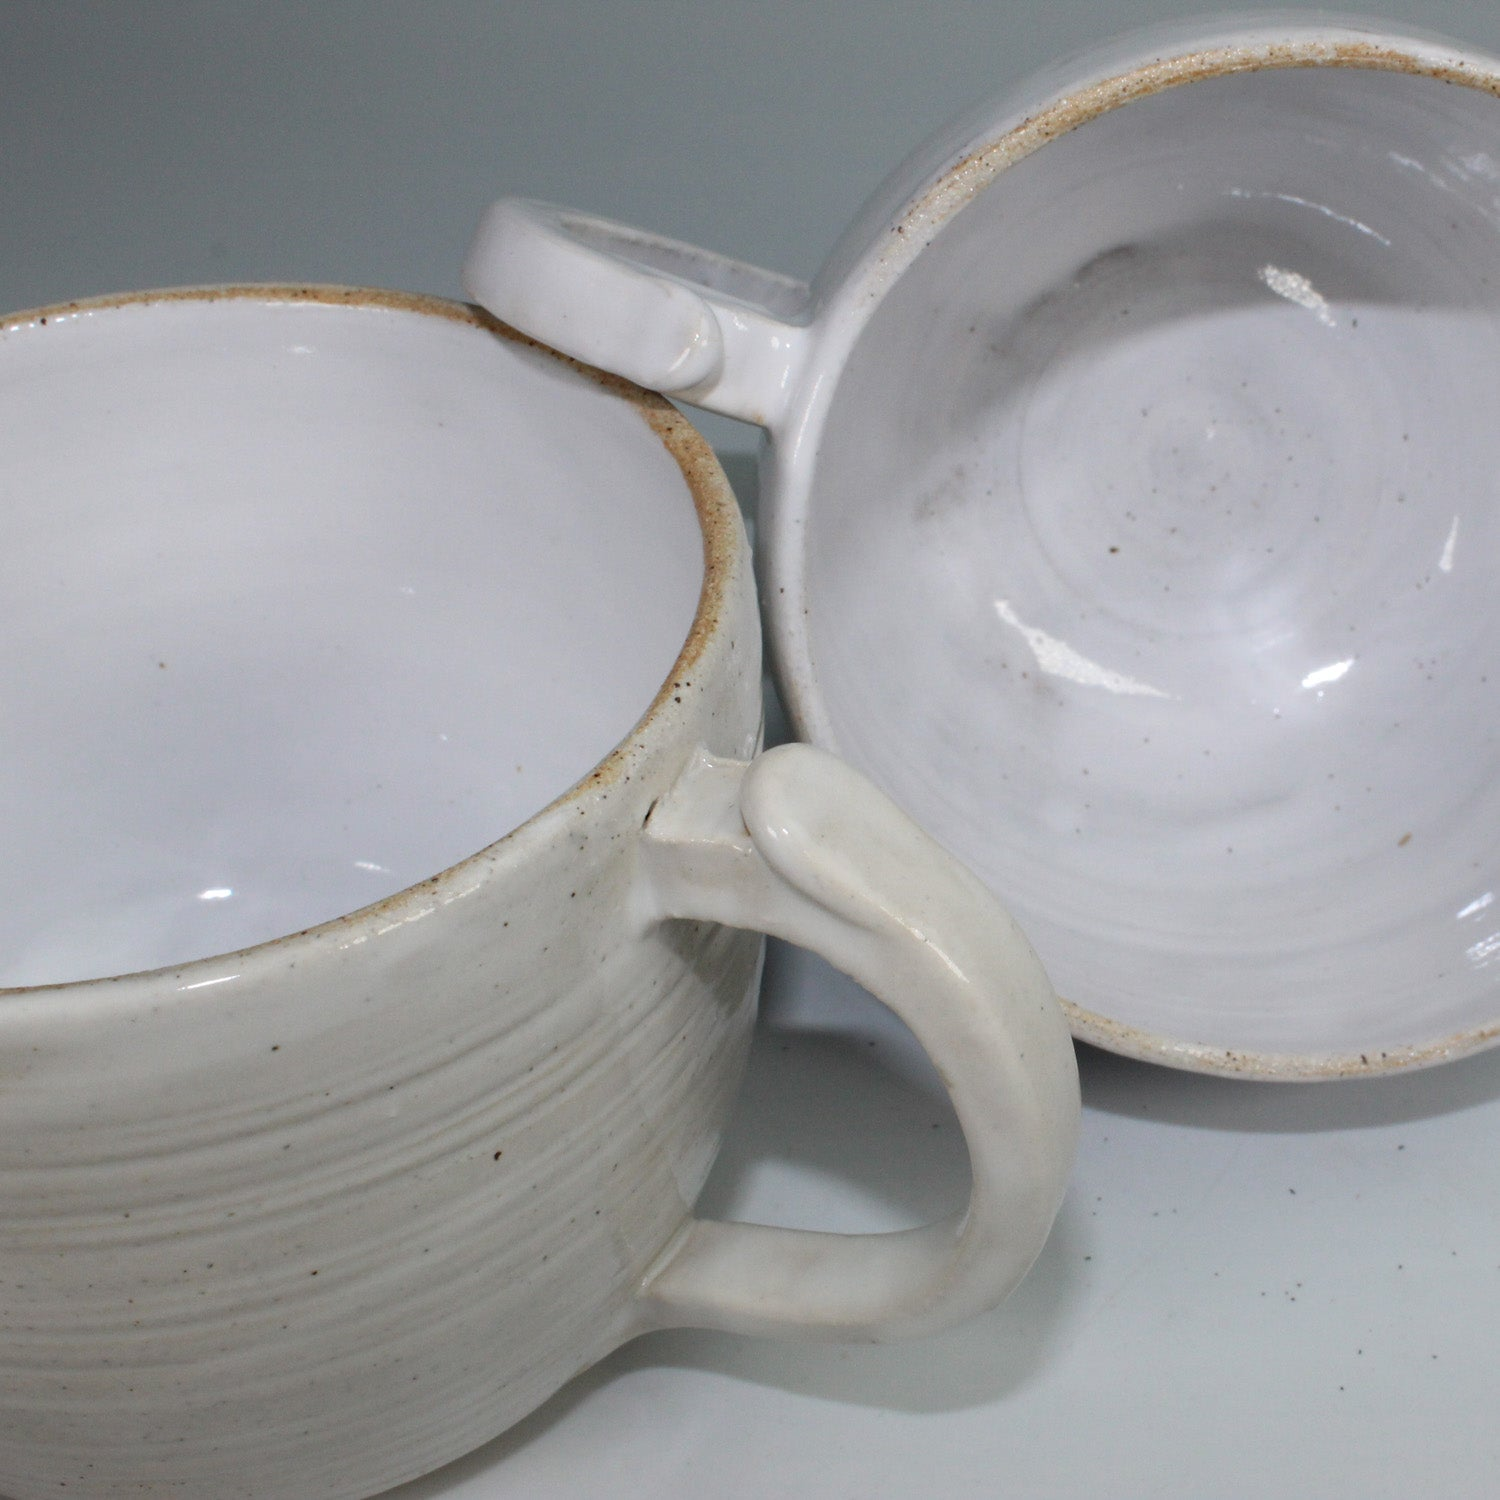 Pair of off white ceramic cups with one lying on its side